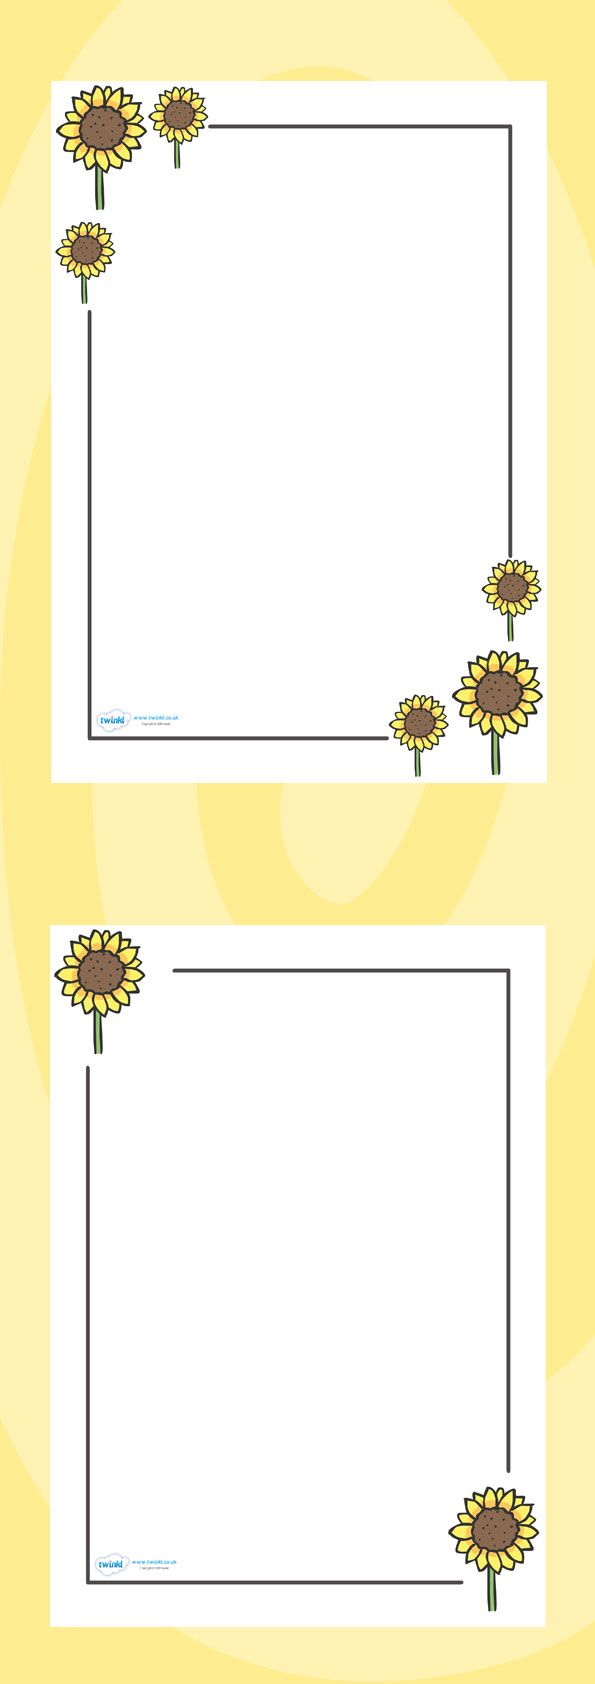 Classroom Design Page : Twinkl resources gt sunflower page borders classroom